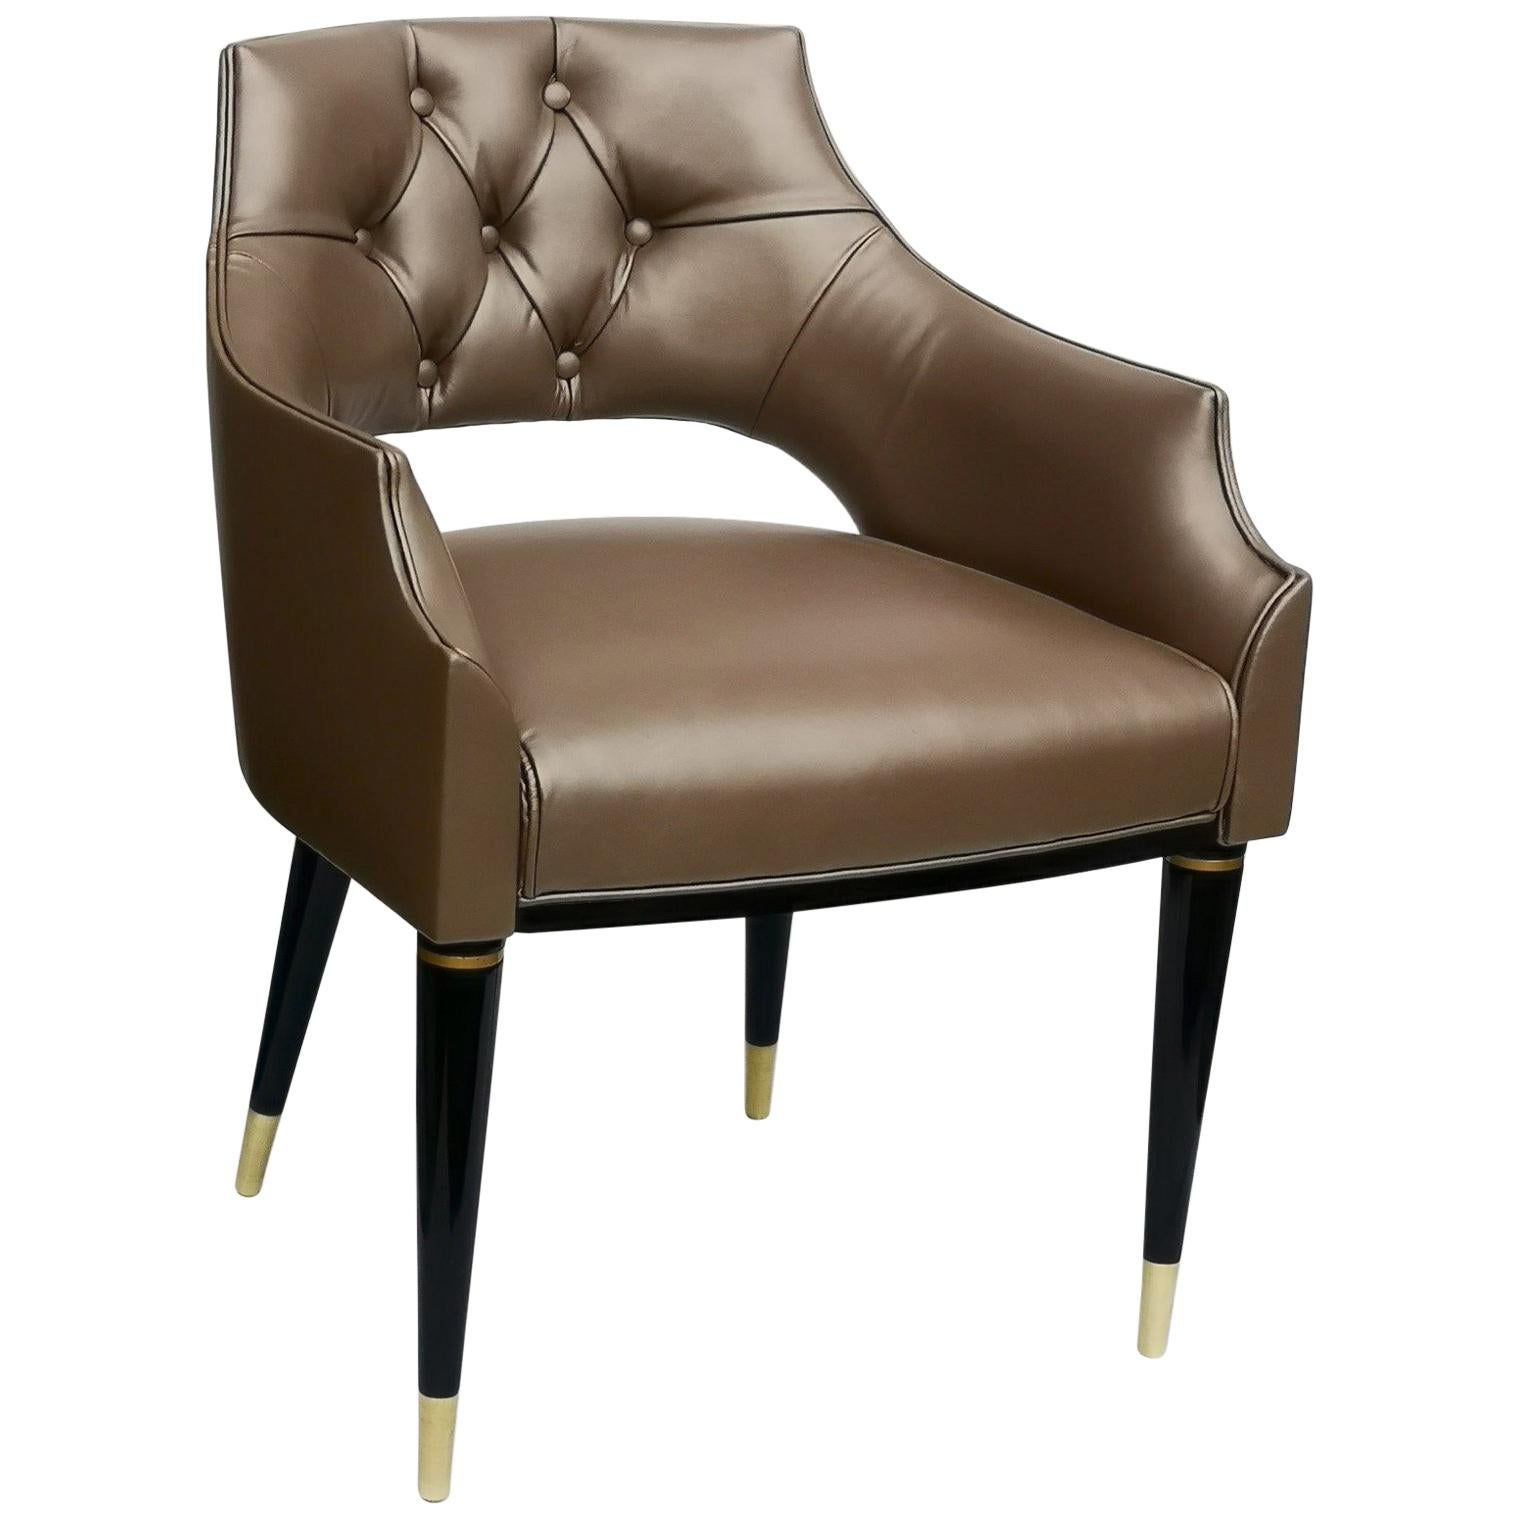 Dining Armchair, Tufted Fiore Italian Leather, Midcentury Style, Luxury Details